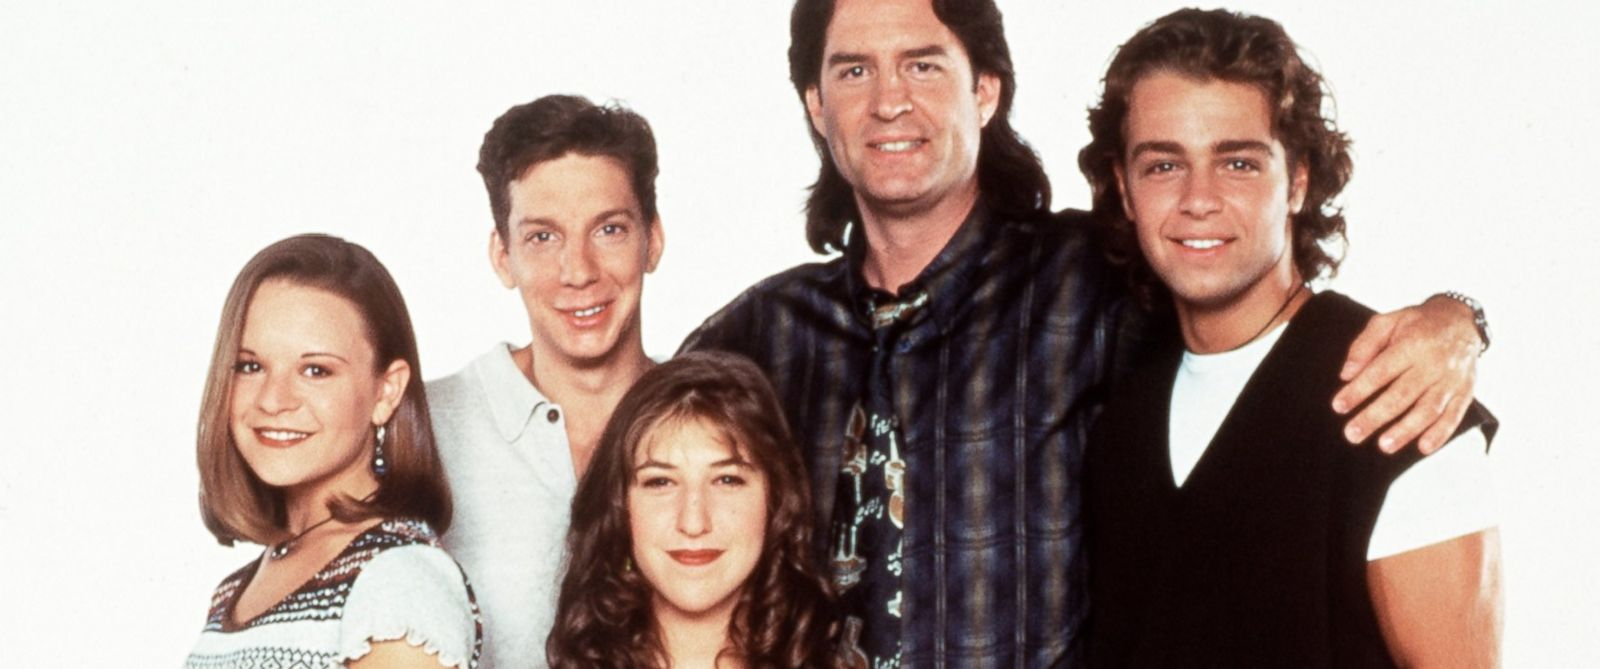 The Cast of 'Blossom' Reunites - See the Photo! - ABC News